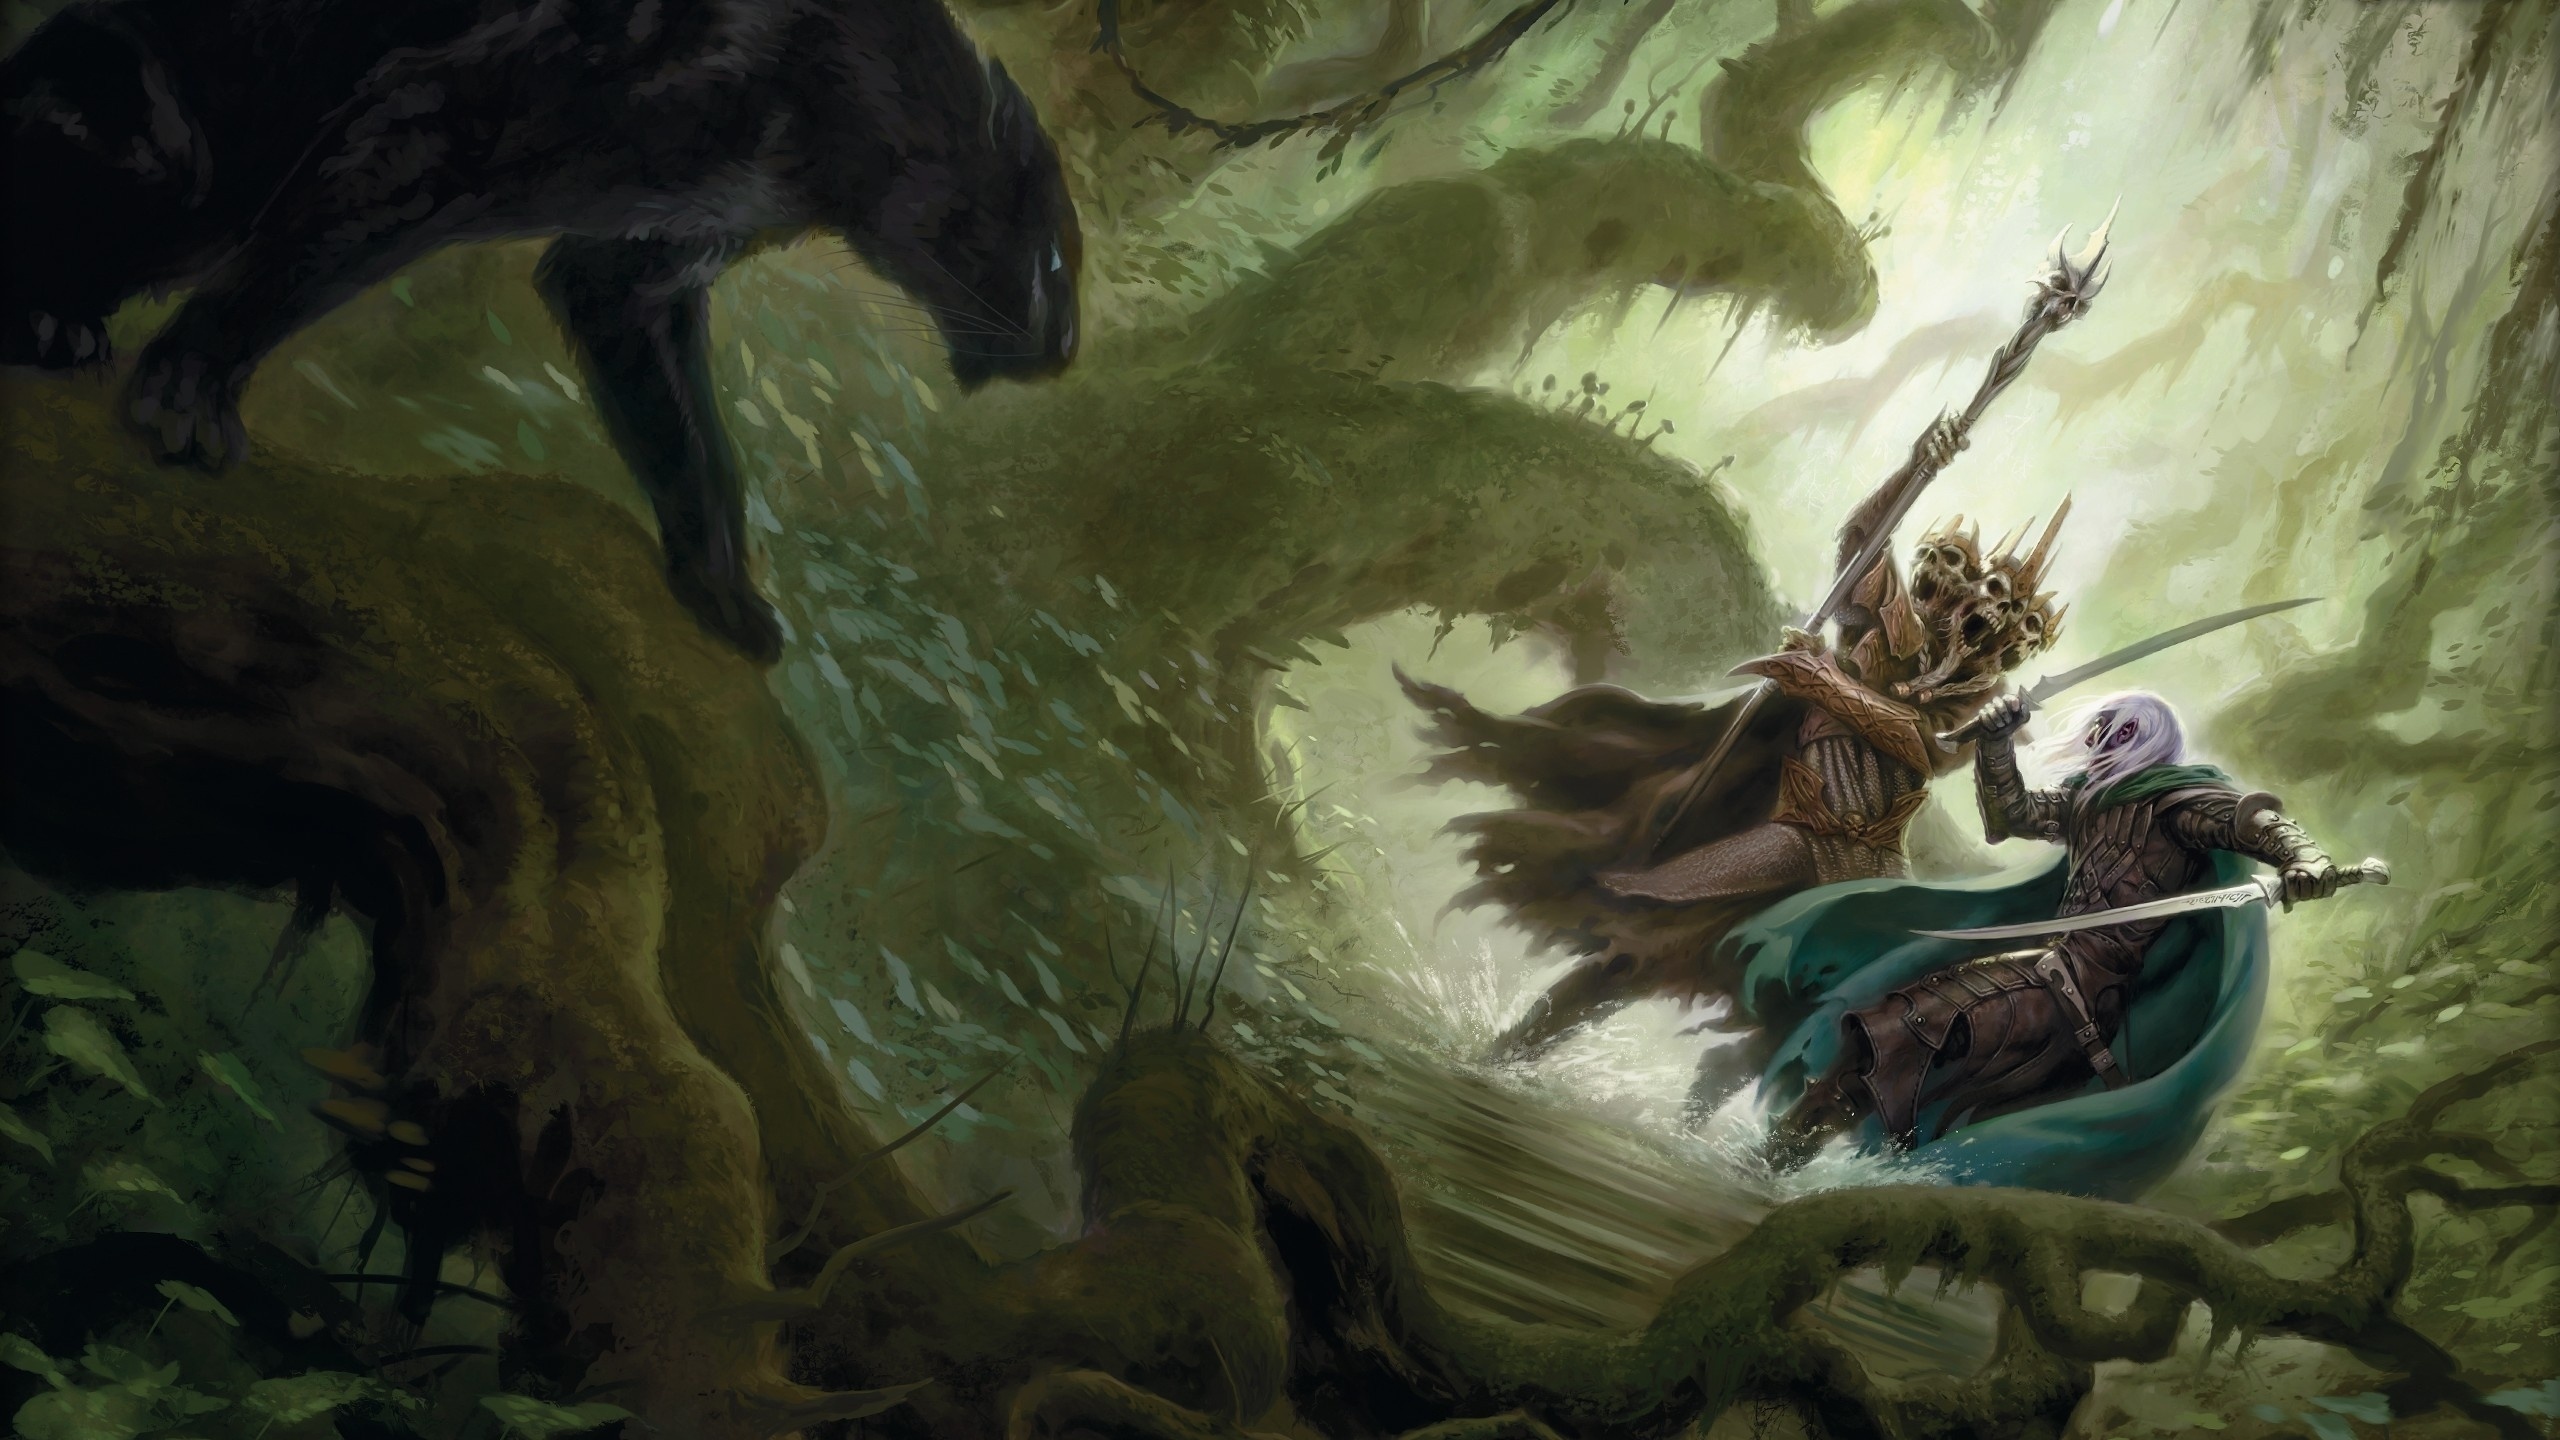 35 dungeons & dragons hd wallpapers | background images - wallpaper